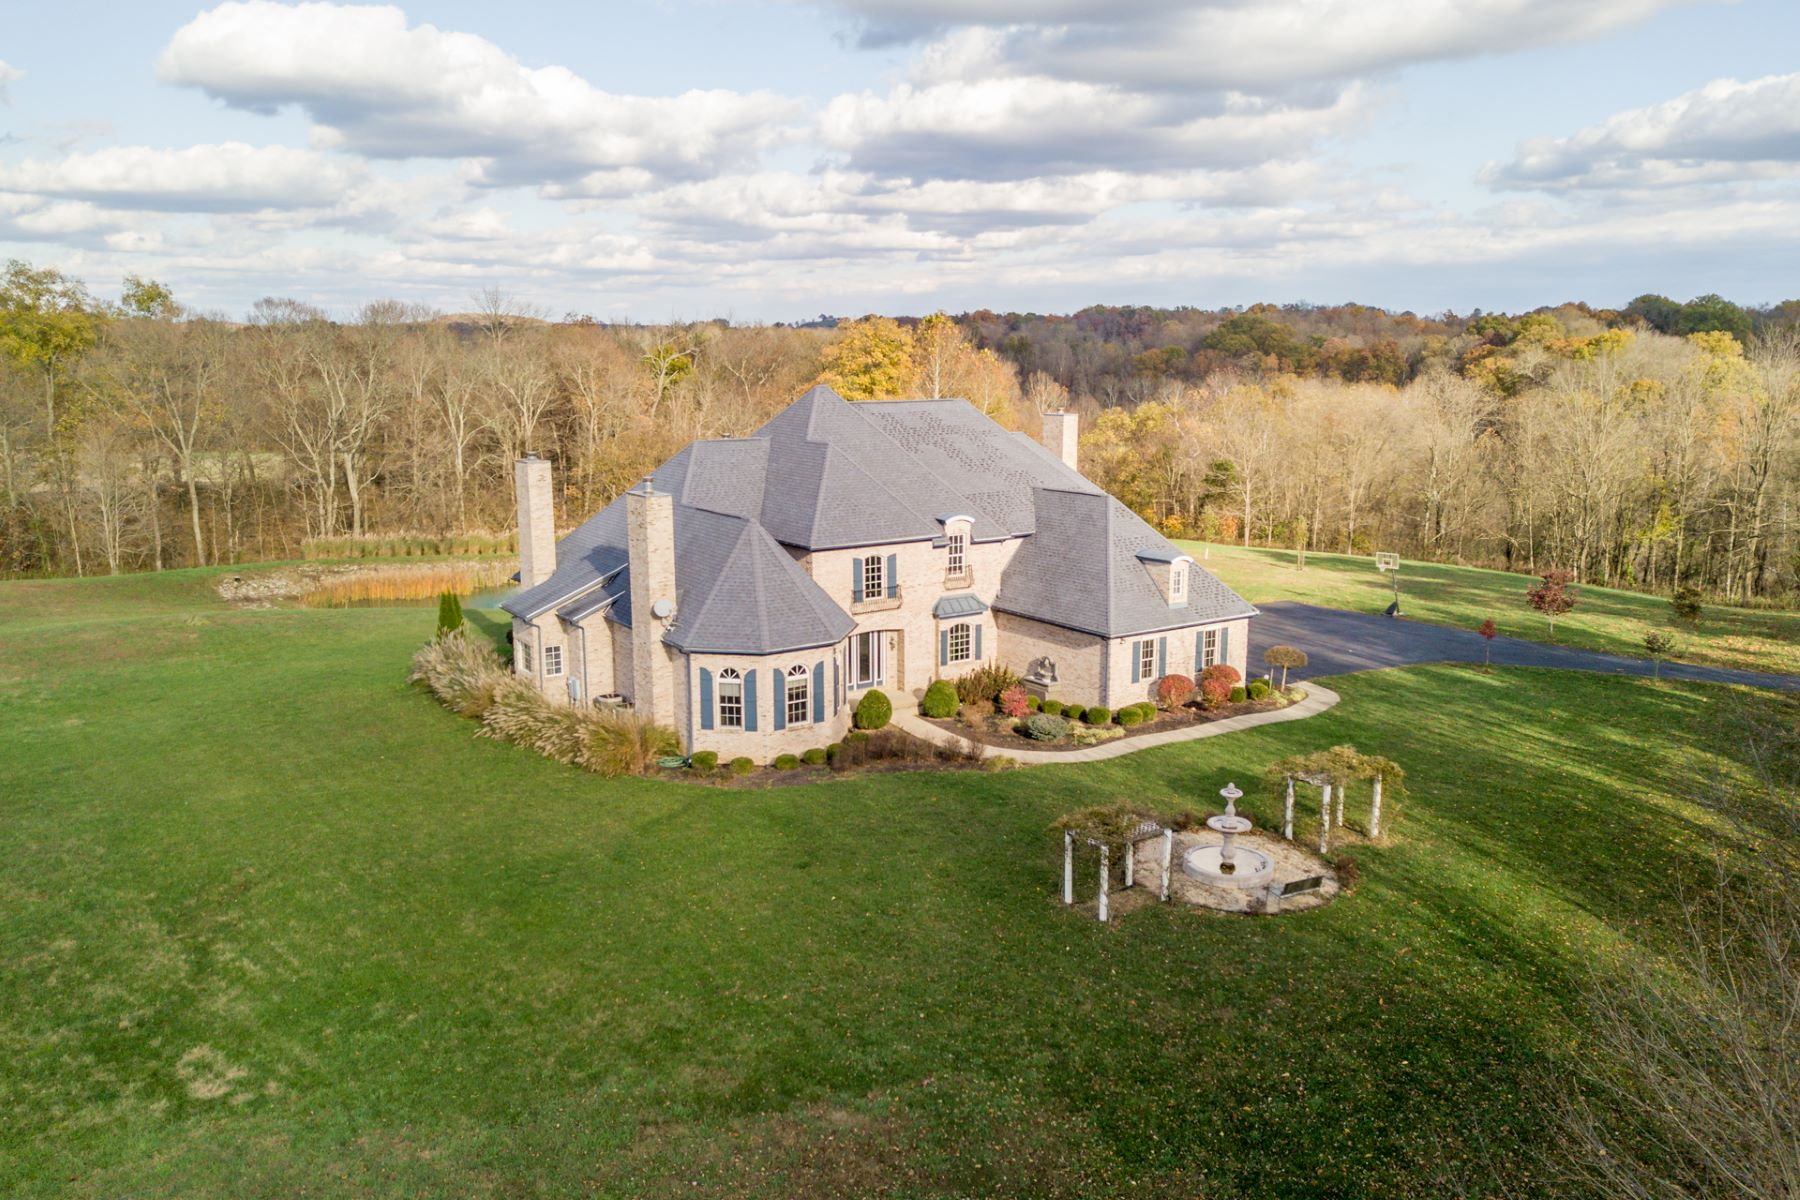 Single Family Homes のために 売買 アット Spacious and stately retreat in the country 2694 State Route 125 West Union, オハイオ 45693 アメリカ